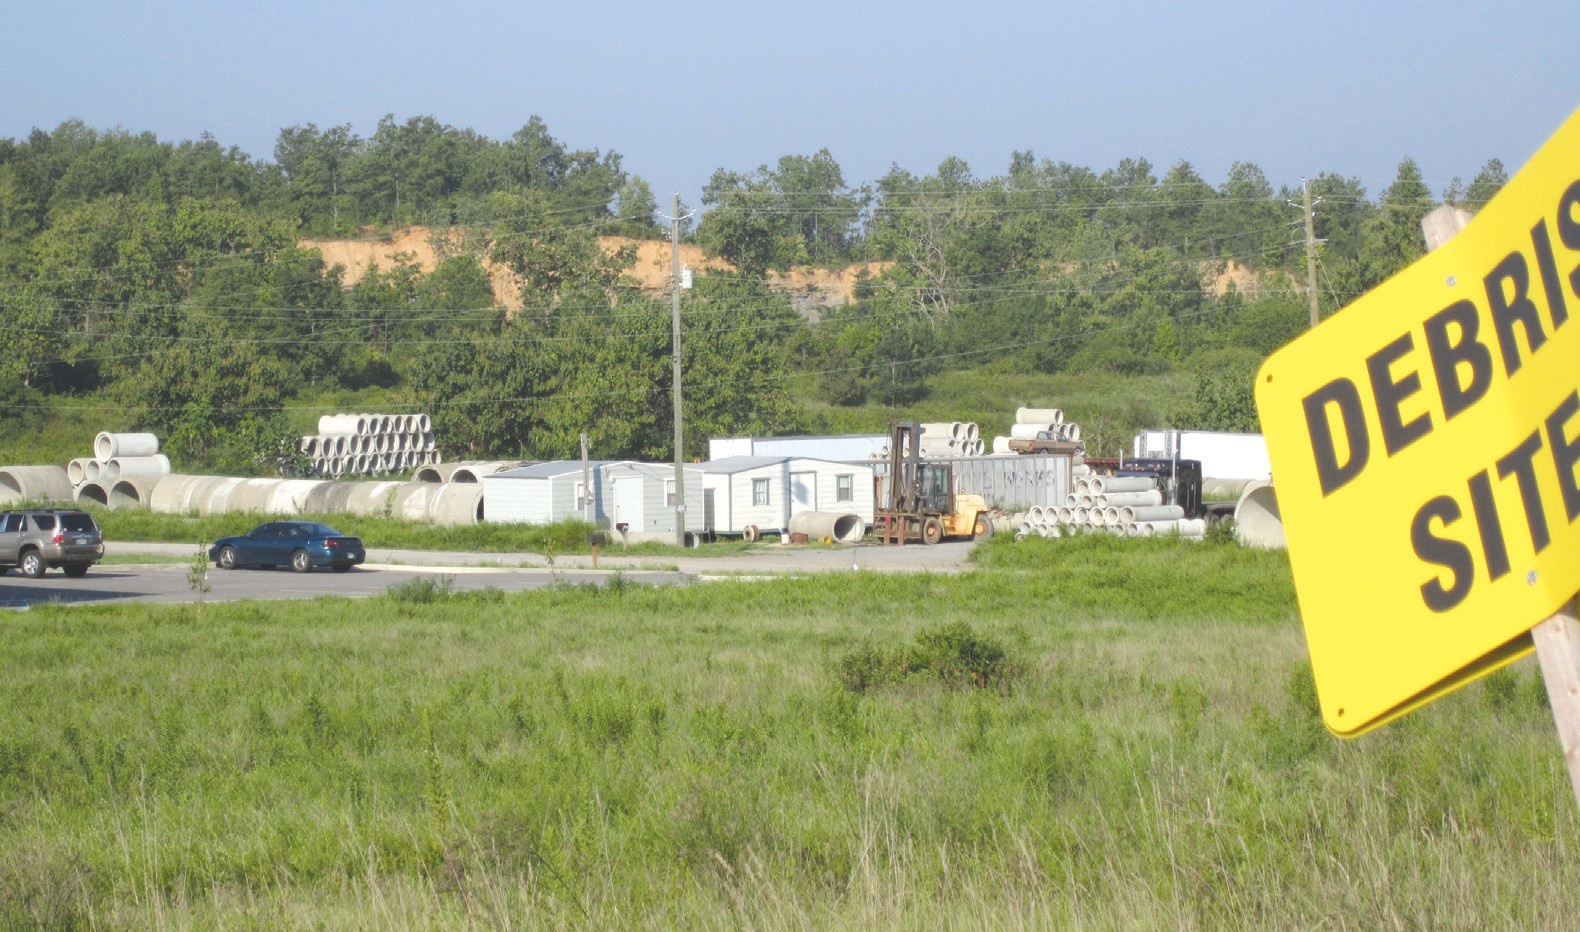 Site of landfill proposed by County Line lies off County Line Road, behind and to the south (left) of Concrete Pipe Supply LLC seen in foreground. Former strip mine highwall visible in background runs across the proposed landfill property. Sign in foreground directs trucks into entrance of WCA, a private landfill located across the County Line Road from the new proposed site.